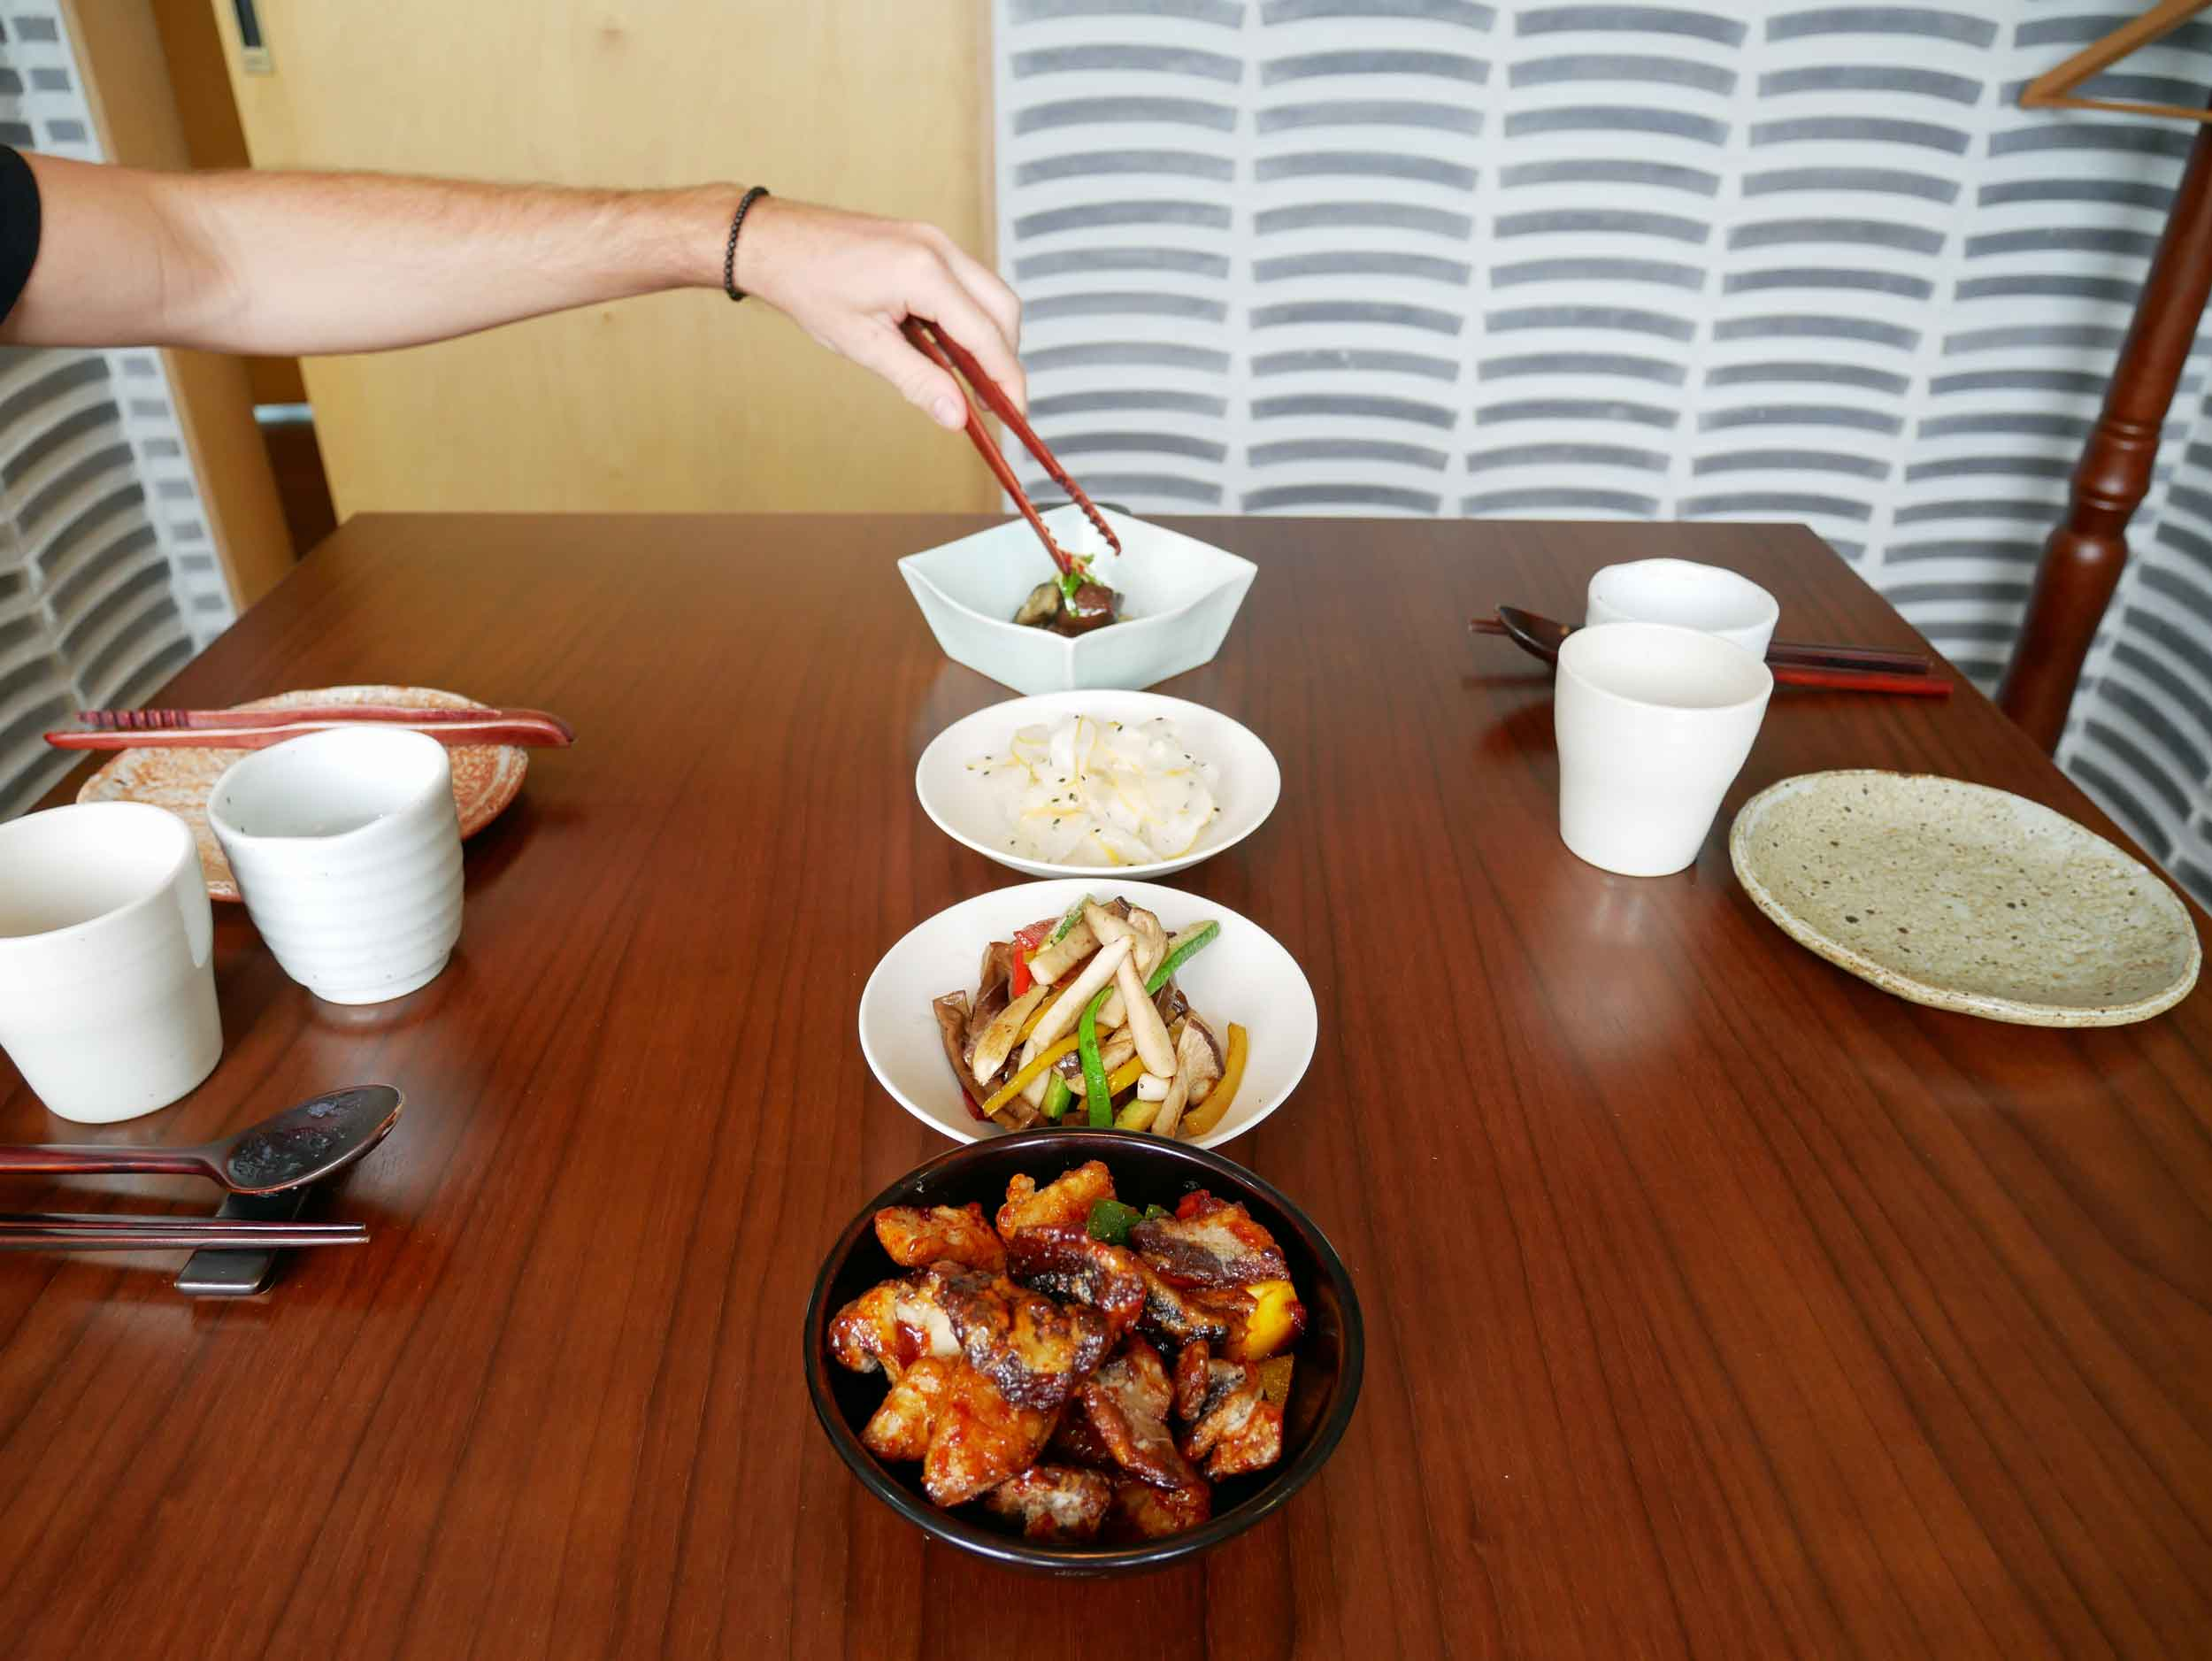 Next, we were offered  sangmi , or cold preparation, of stir-fried dried acorn jelly, seasoned Korean melon, and summer eggplant with ginger sauce.